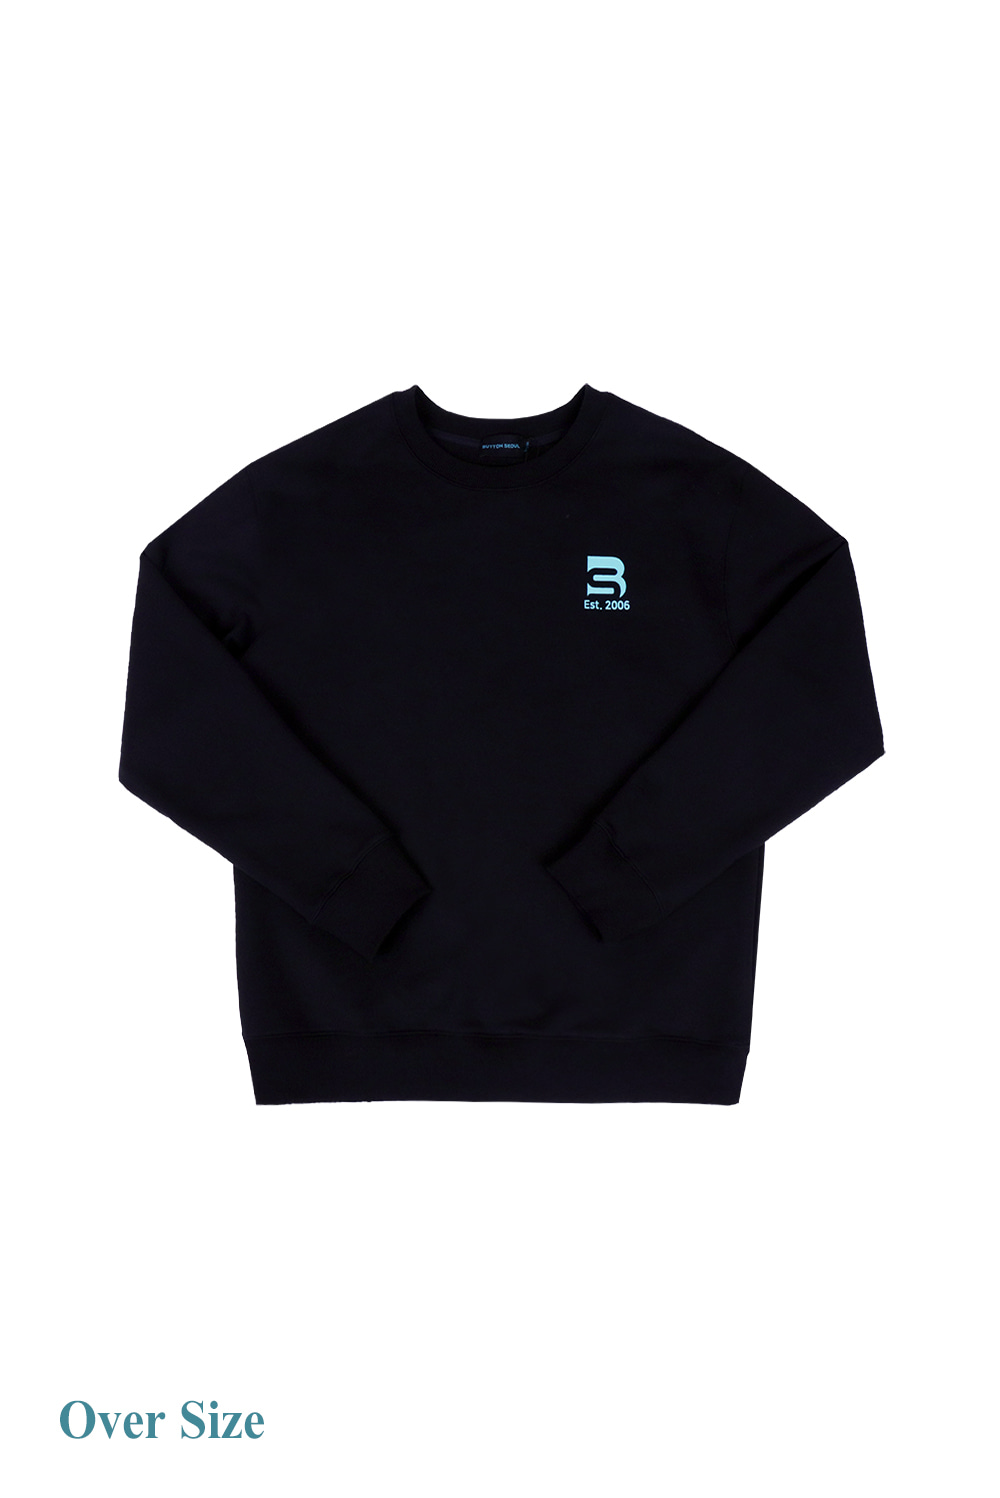 Oversize Logo Man to Man (Black)